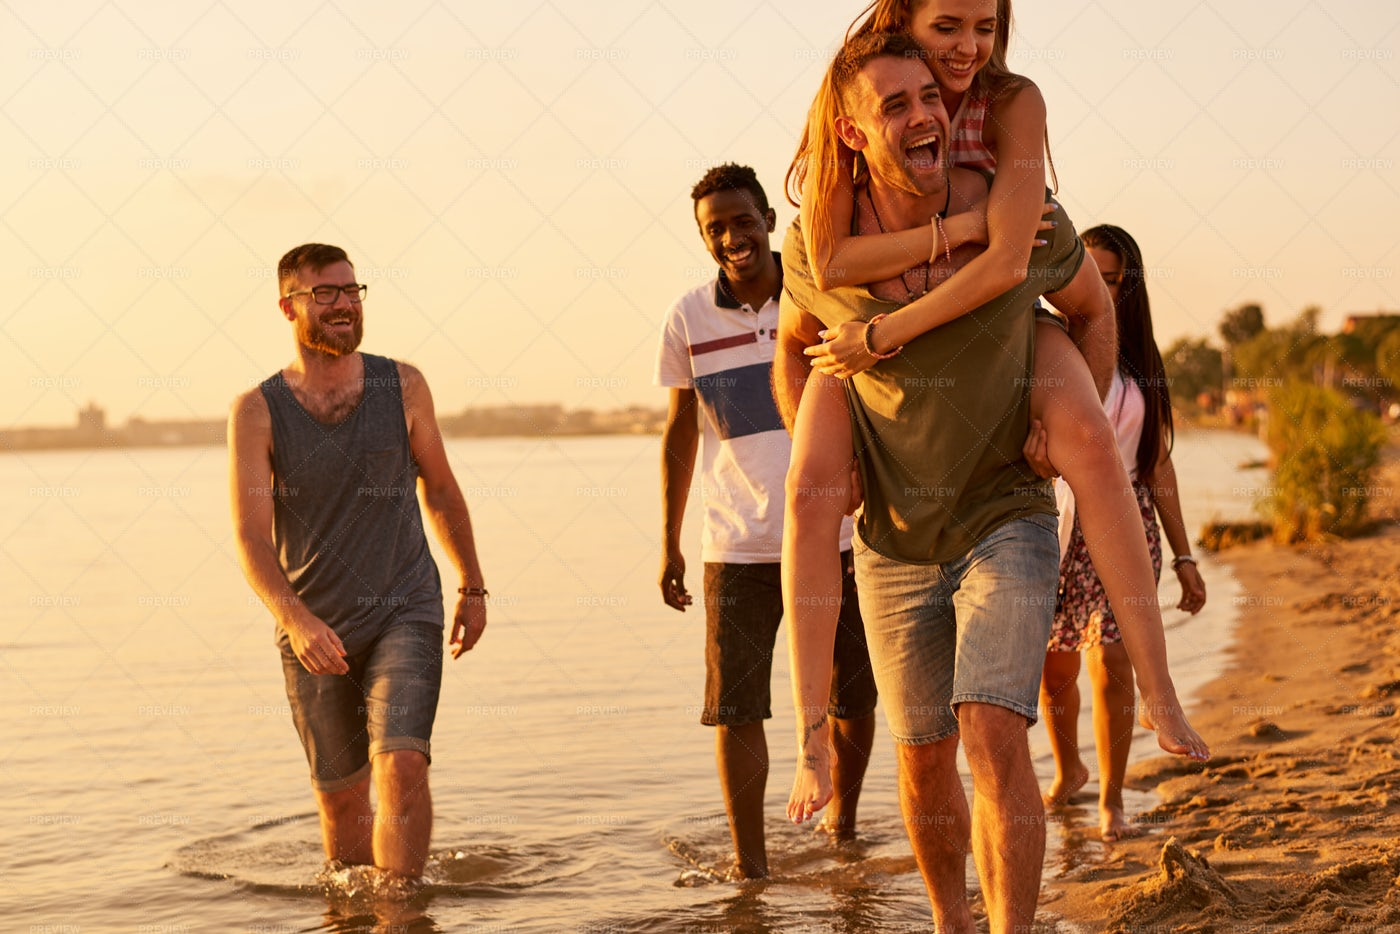 Cheerful Friends Walking Together...: Stock Photos